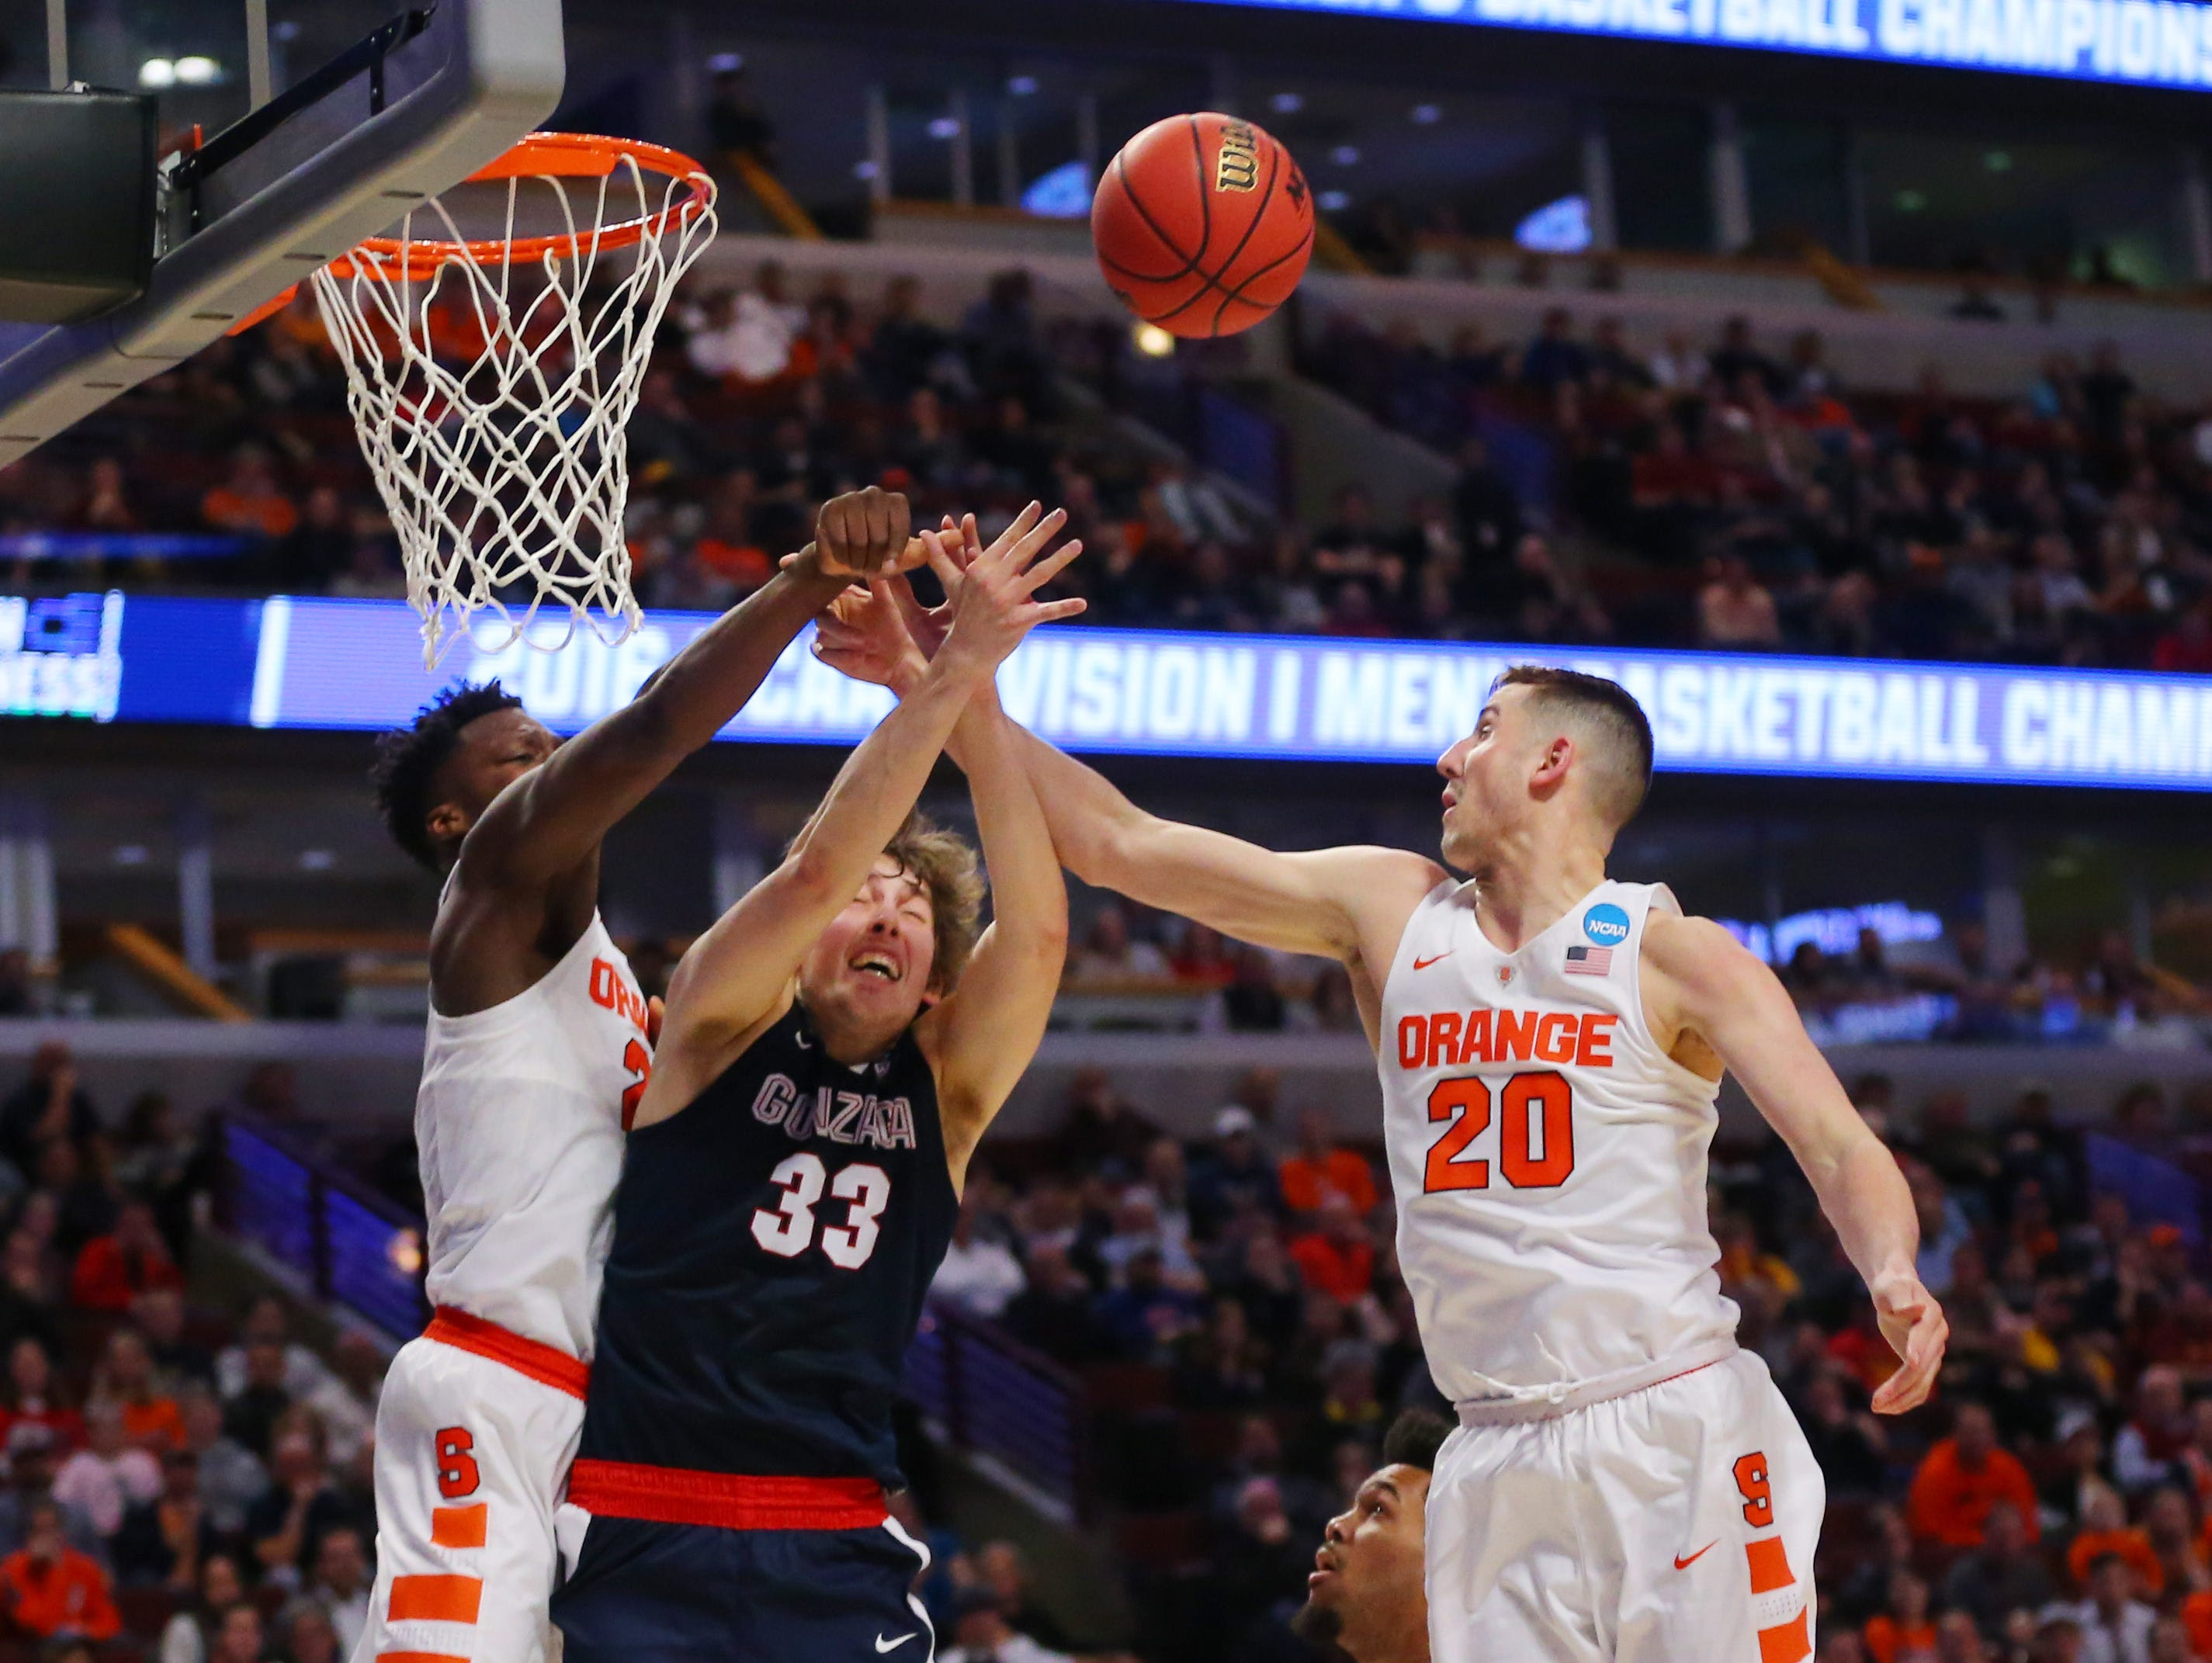 Mar 25, 2016; Chicago, IL, USA; Gonzaga Bulldogs forward Kyle Wiltjer (33) battles for the ball between Syracuse Orange forward Tyler Lydon (20) and forward Tyler Roberson (21) during the second half in a semifinal game in the Midwest regional of the NCAA Tournament at United Center. Mandatory Credit: Dennis Wierzbicki-USA TODAY Sports